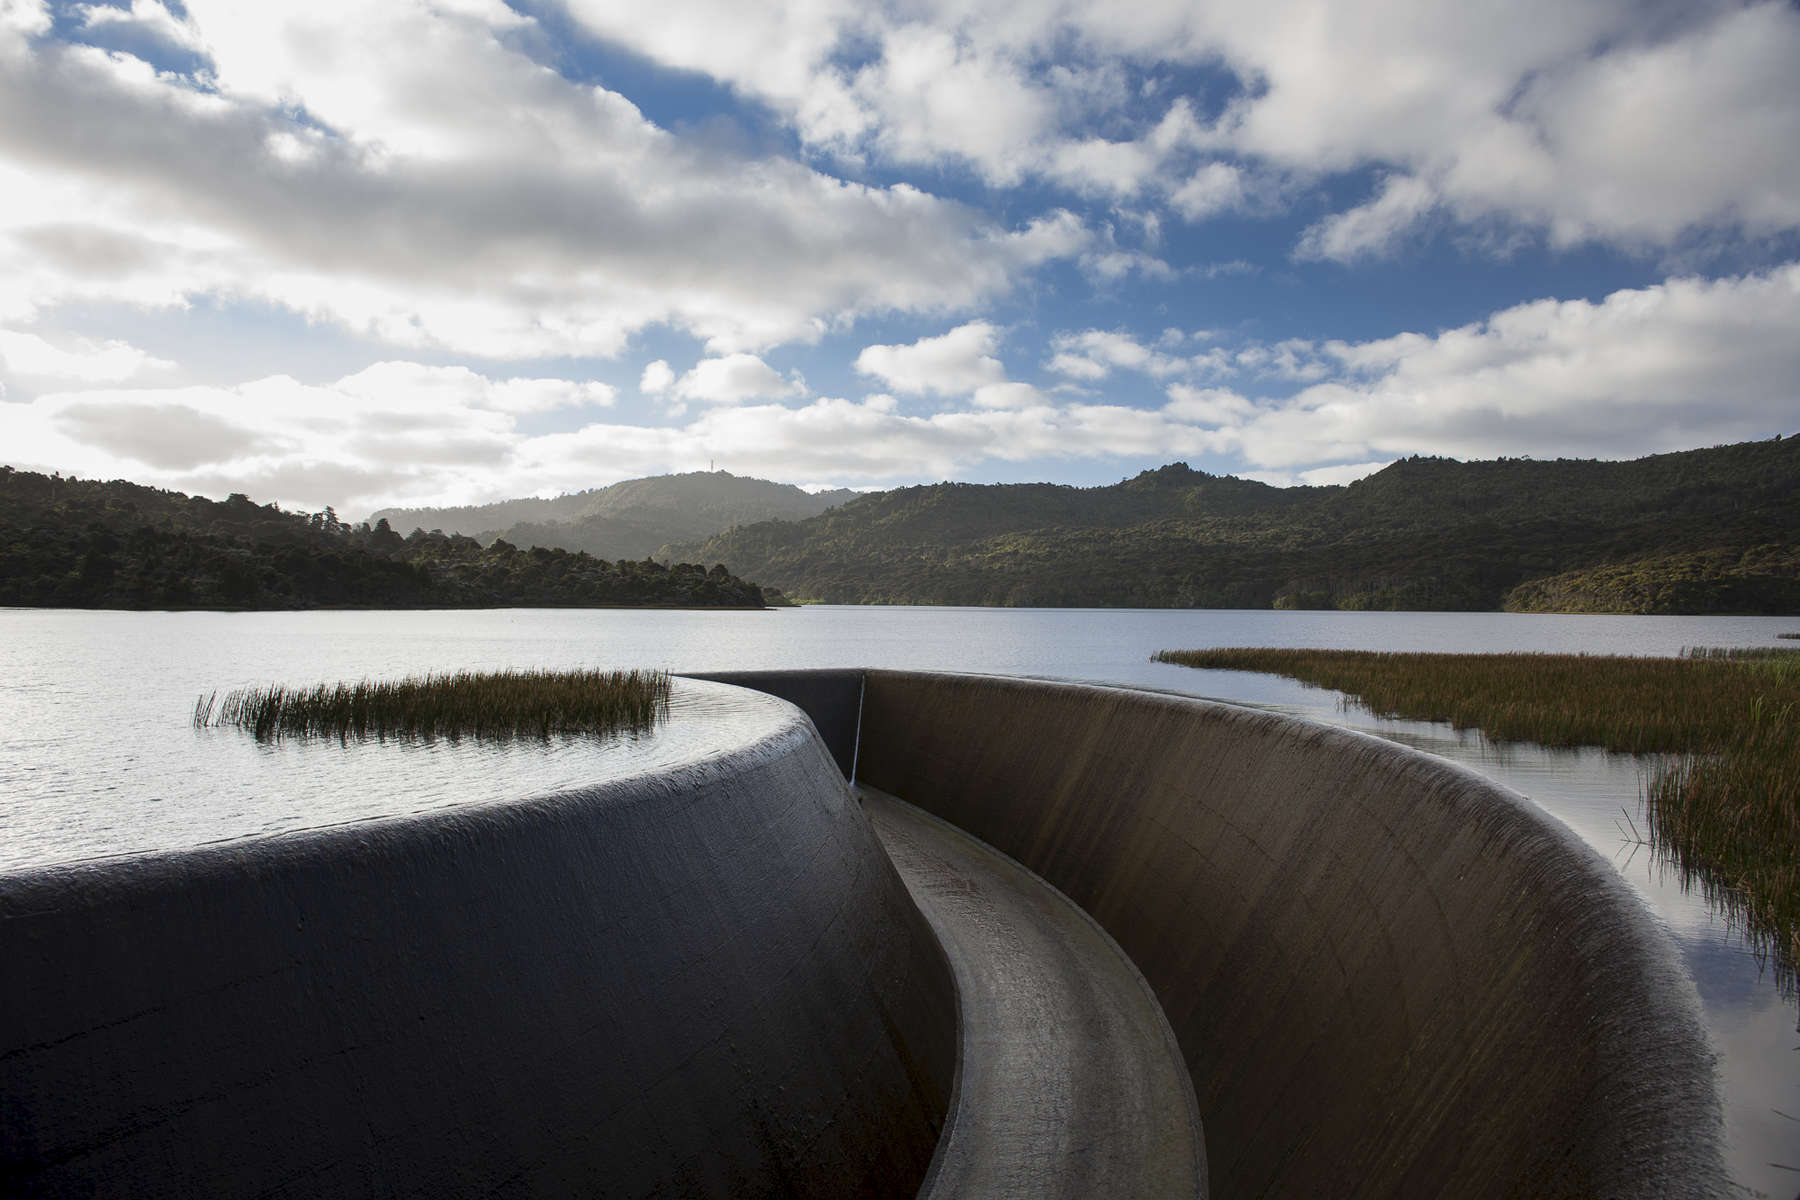 The Gordon Dam generates hydro-electric power in South West Tasmania, Australia.  Shot in Australia by Vermont photographer Judd Lamphere.